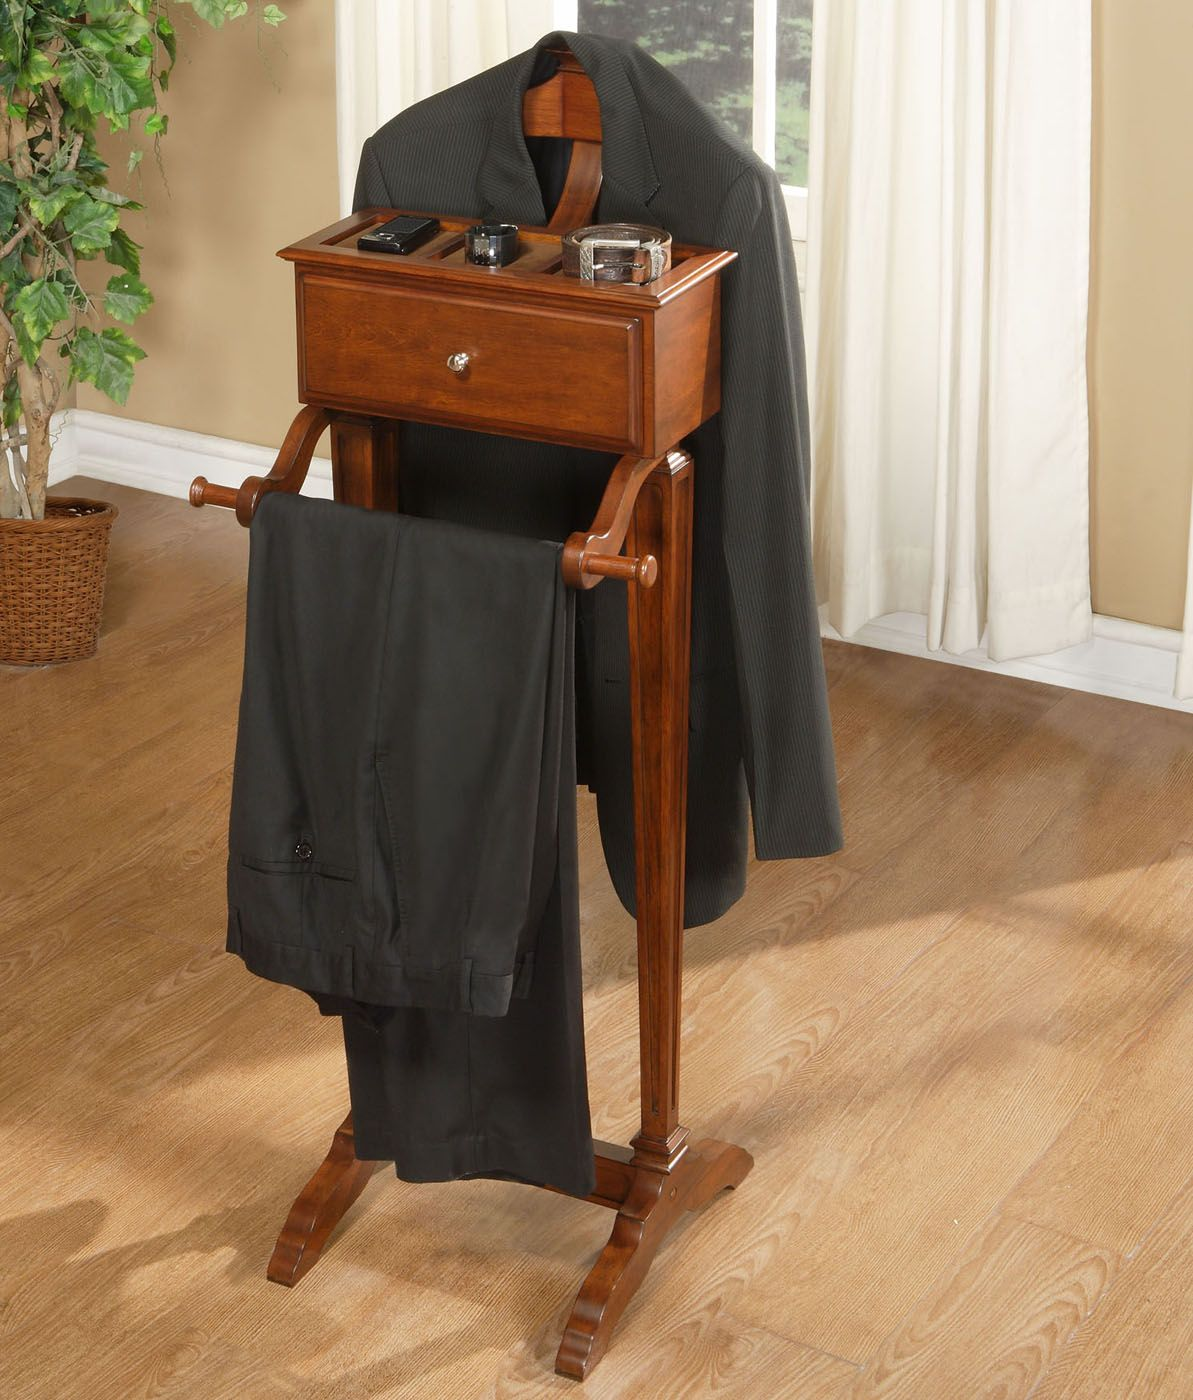 Mens Chair Valet Stand Design Men 39s Would Be Very Helpful I Can Use The